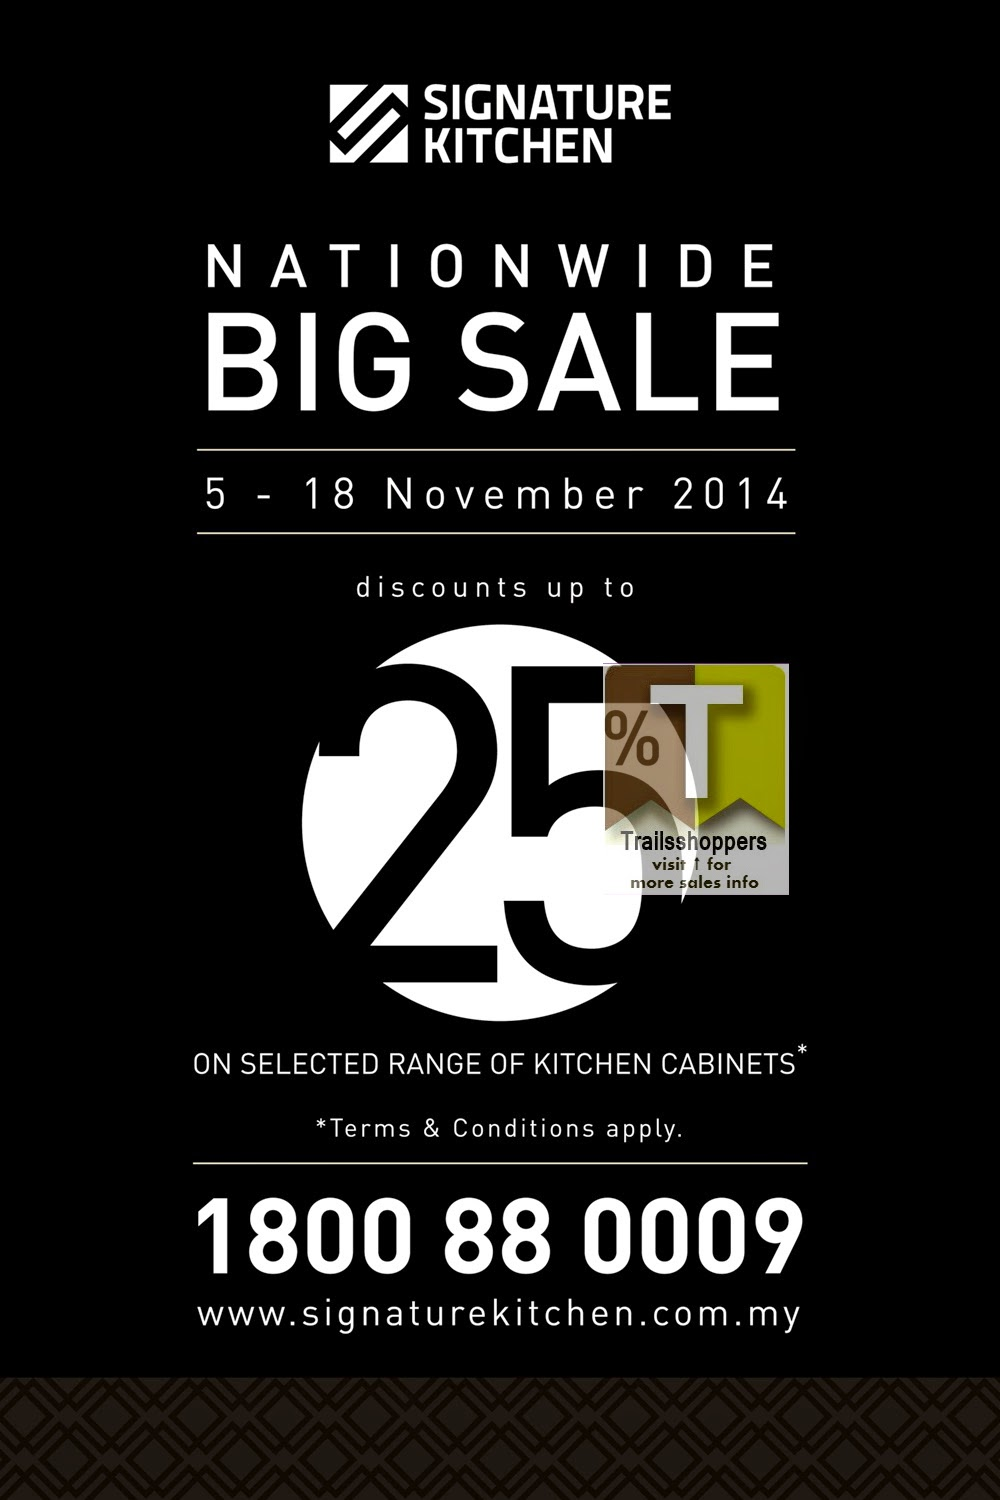 Signature Kitchen The Nationwide Big Sale offers